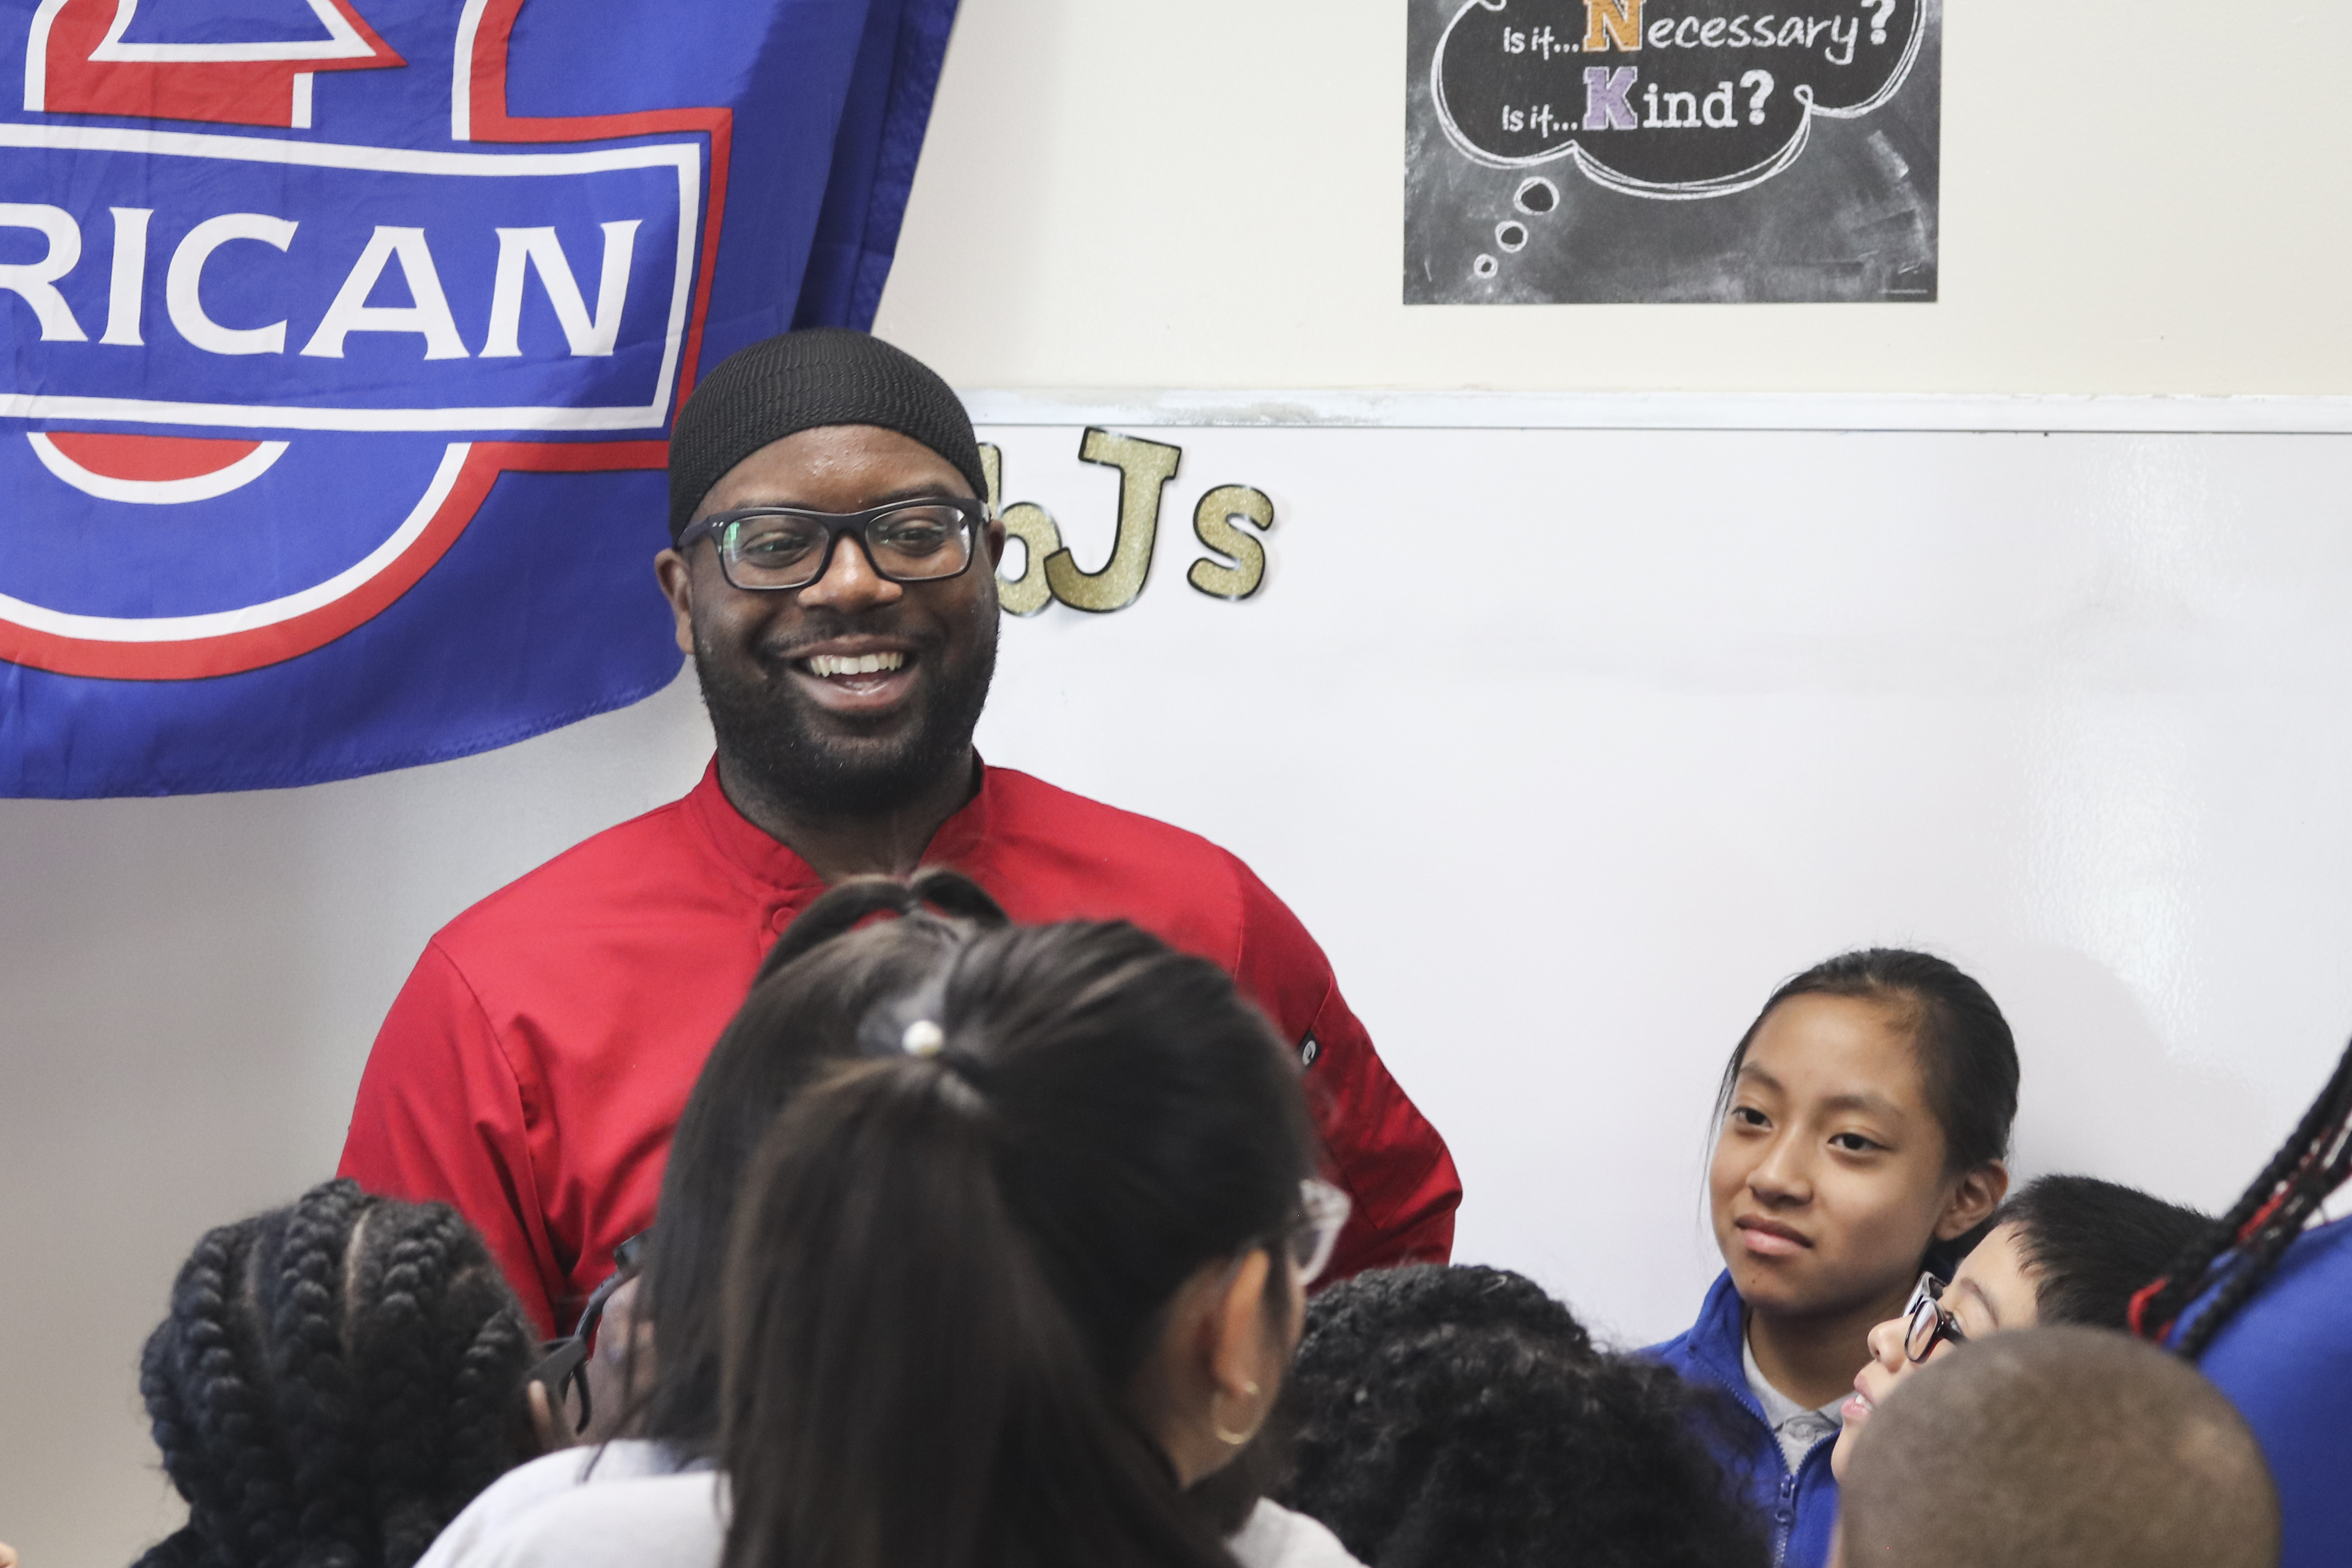 Chef Black smiles as he fields questions from curious students.